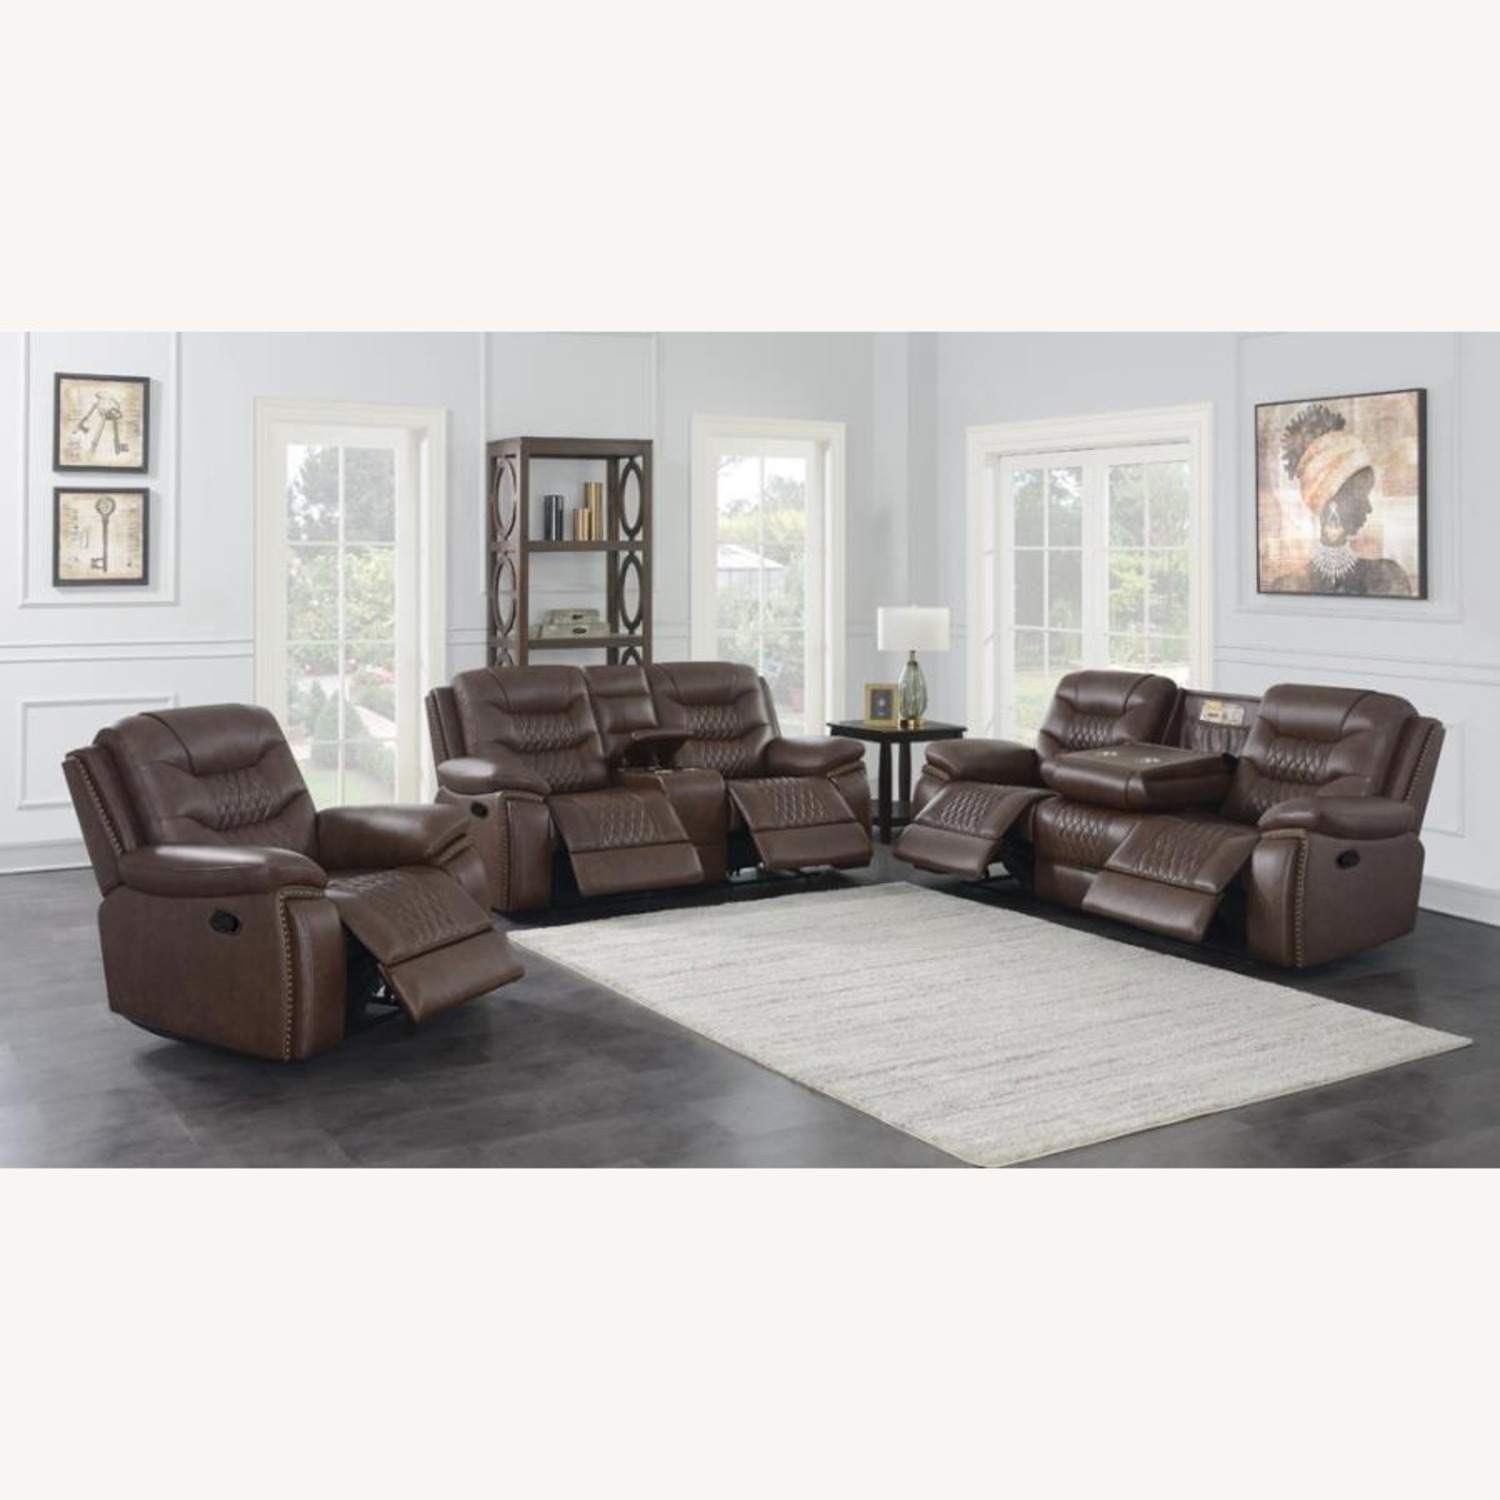 Recliner In Comfortable Brown Performance Leather - image-6